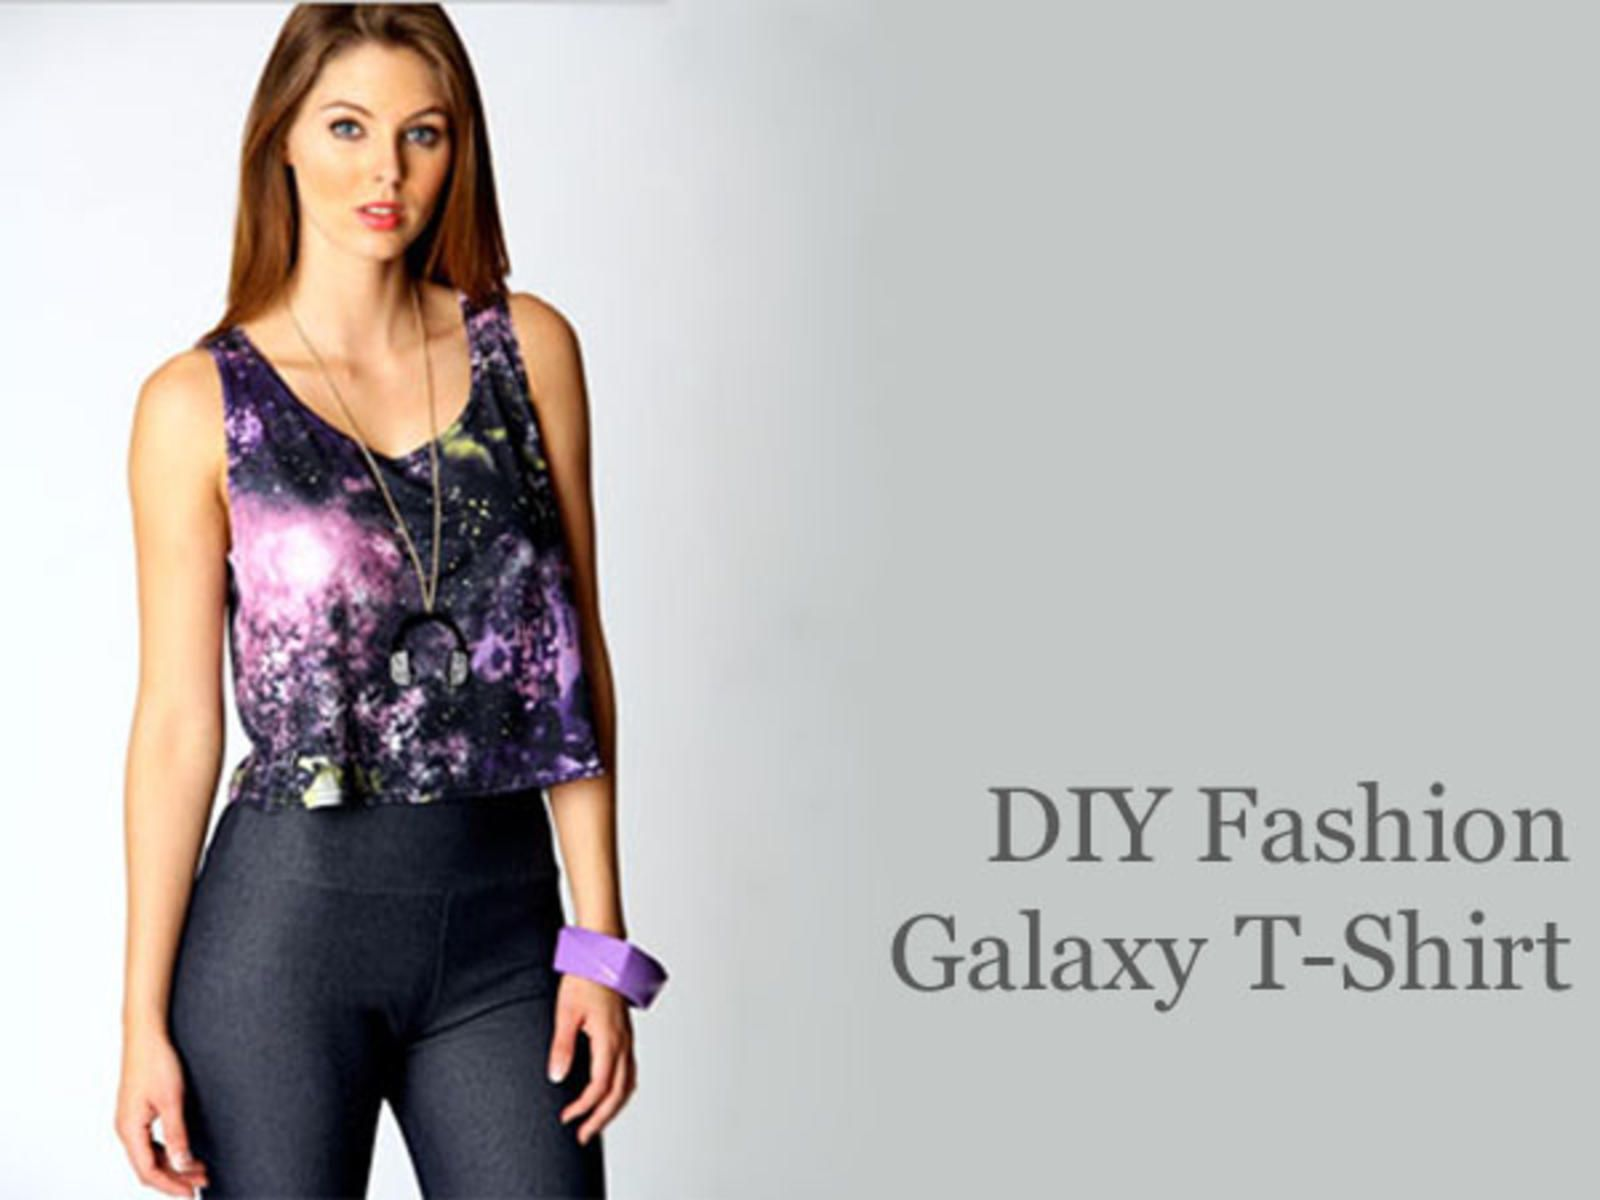 DIY Fashion: Painted Galaxy T-Shirt.